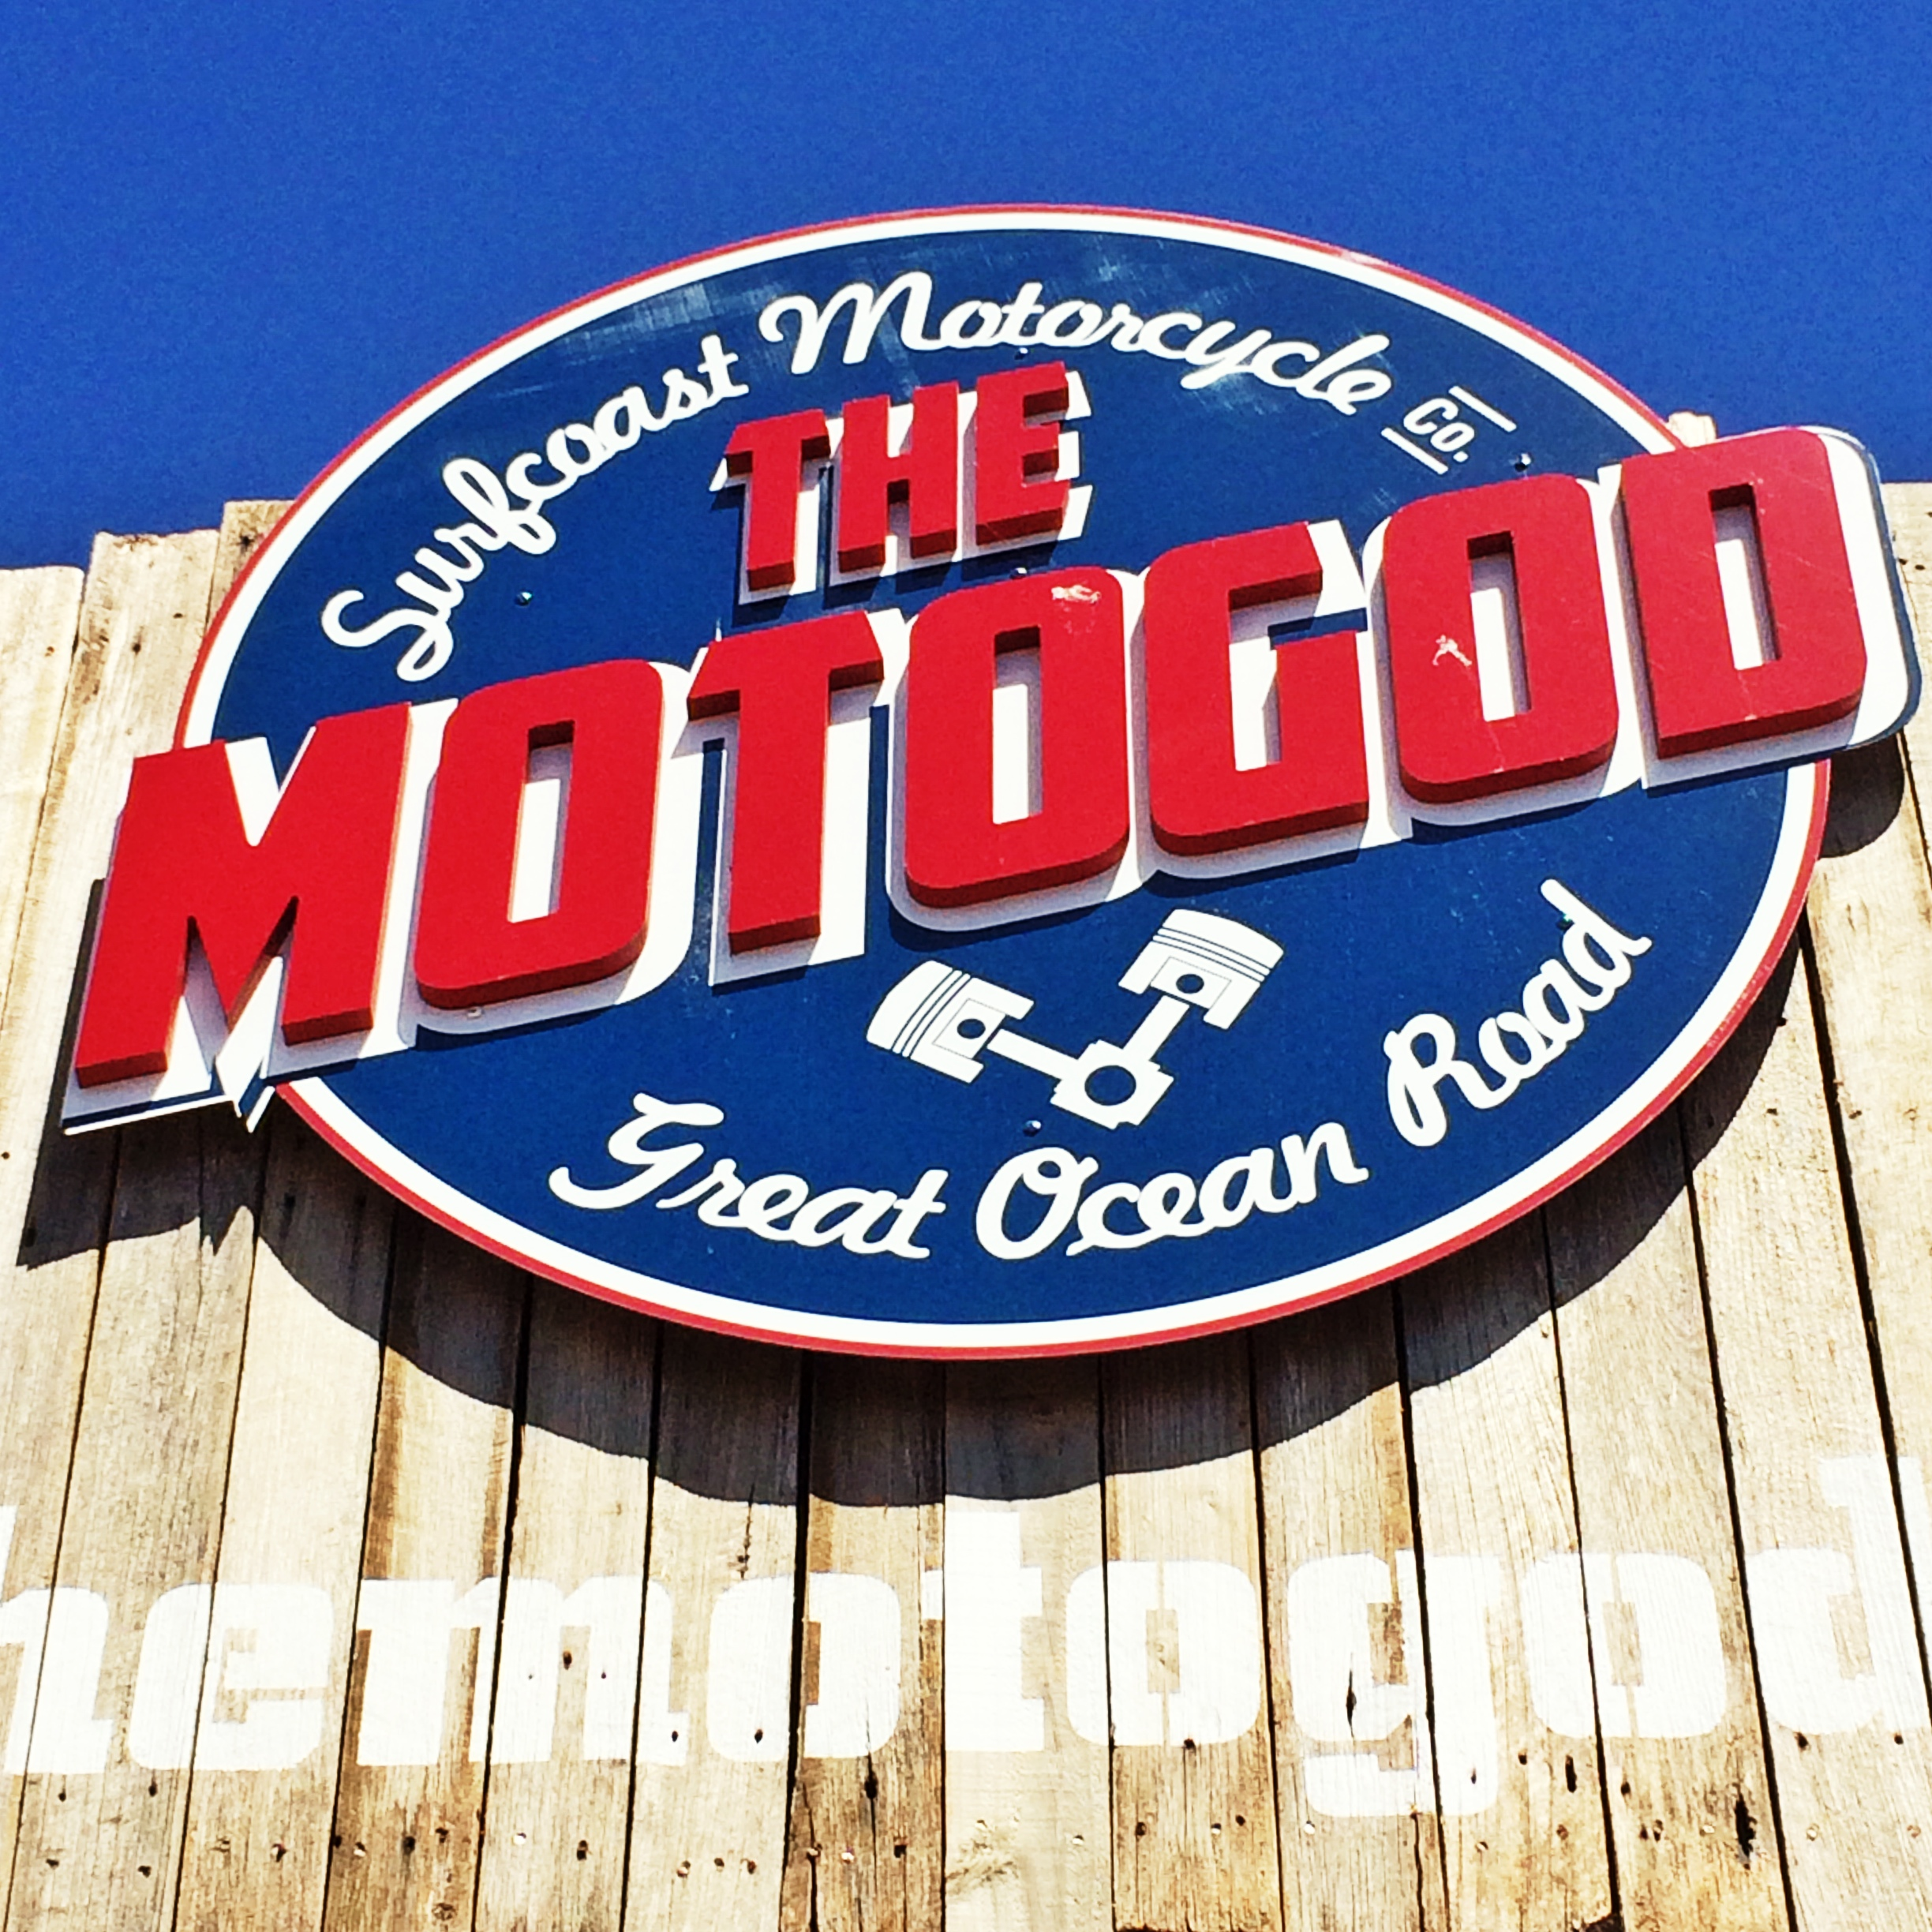 Become a Surfcoast Moto God, with the help of the only motorcycle experience right at the start of the Great Ocean Road......